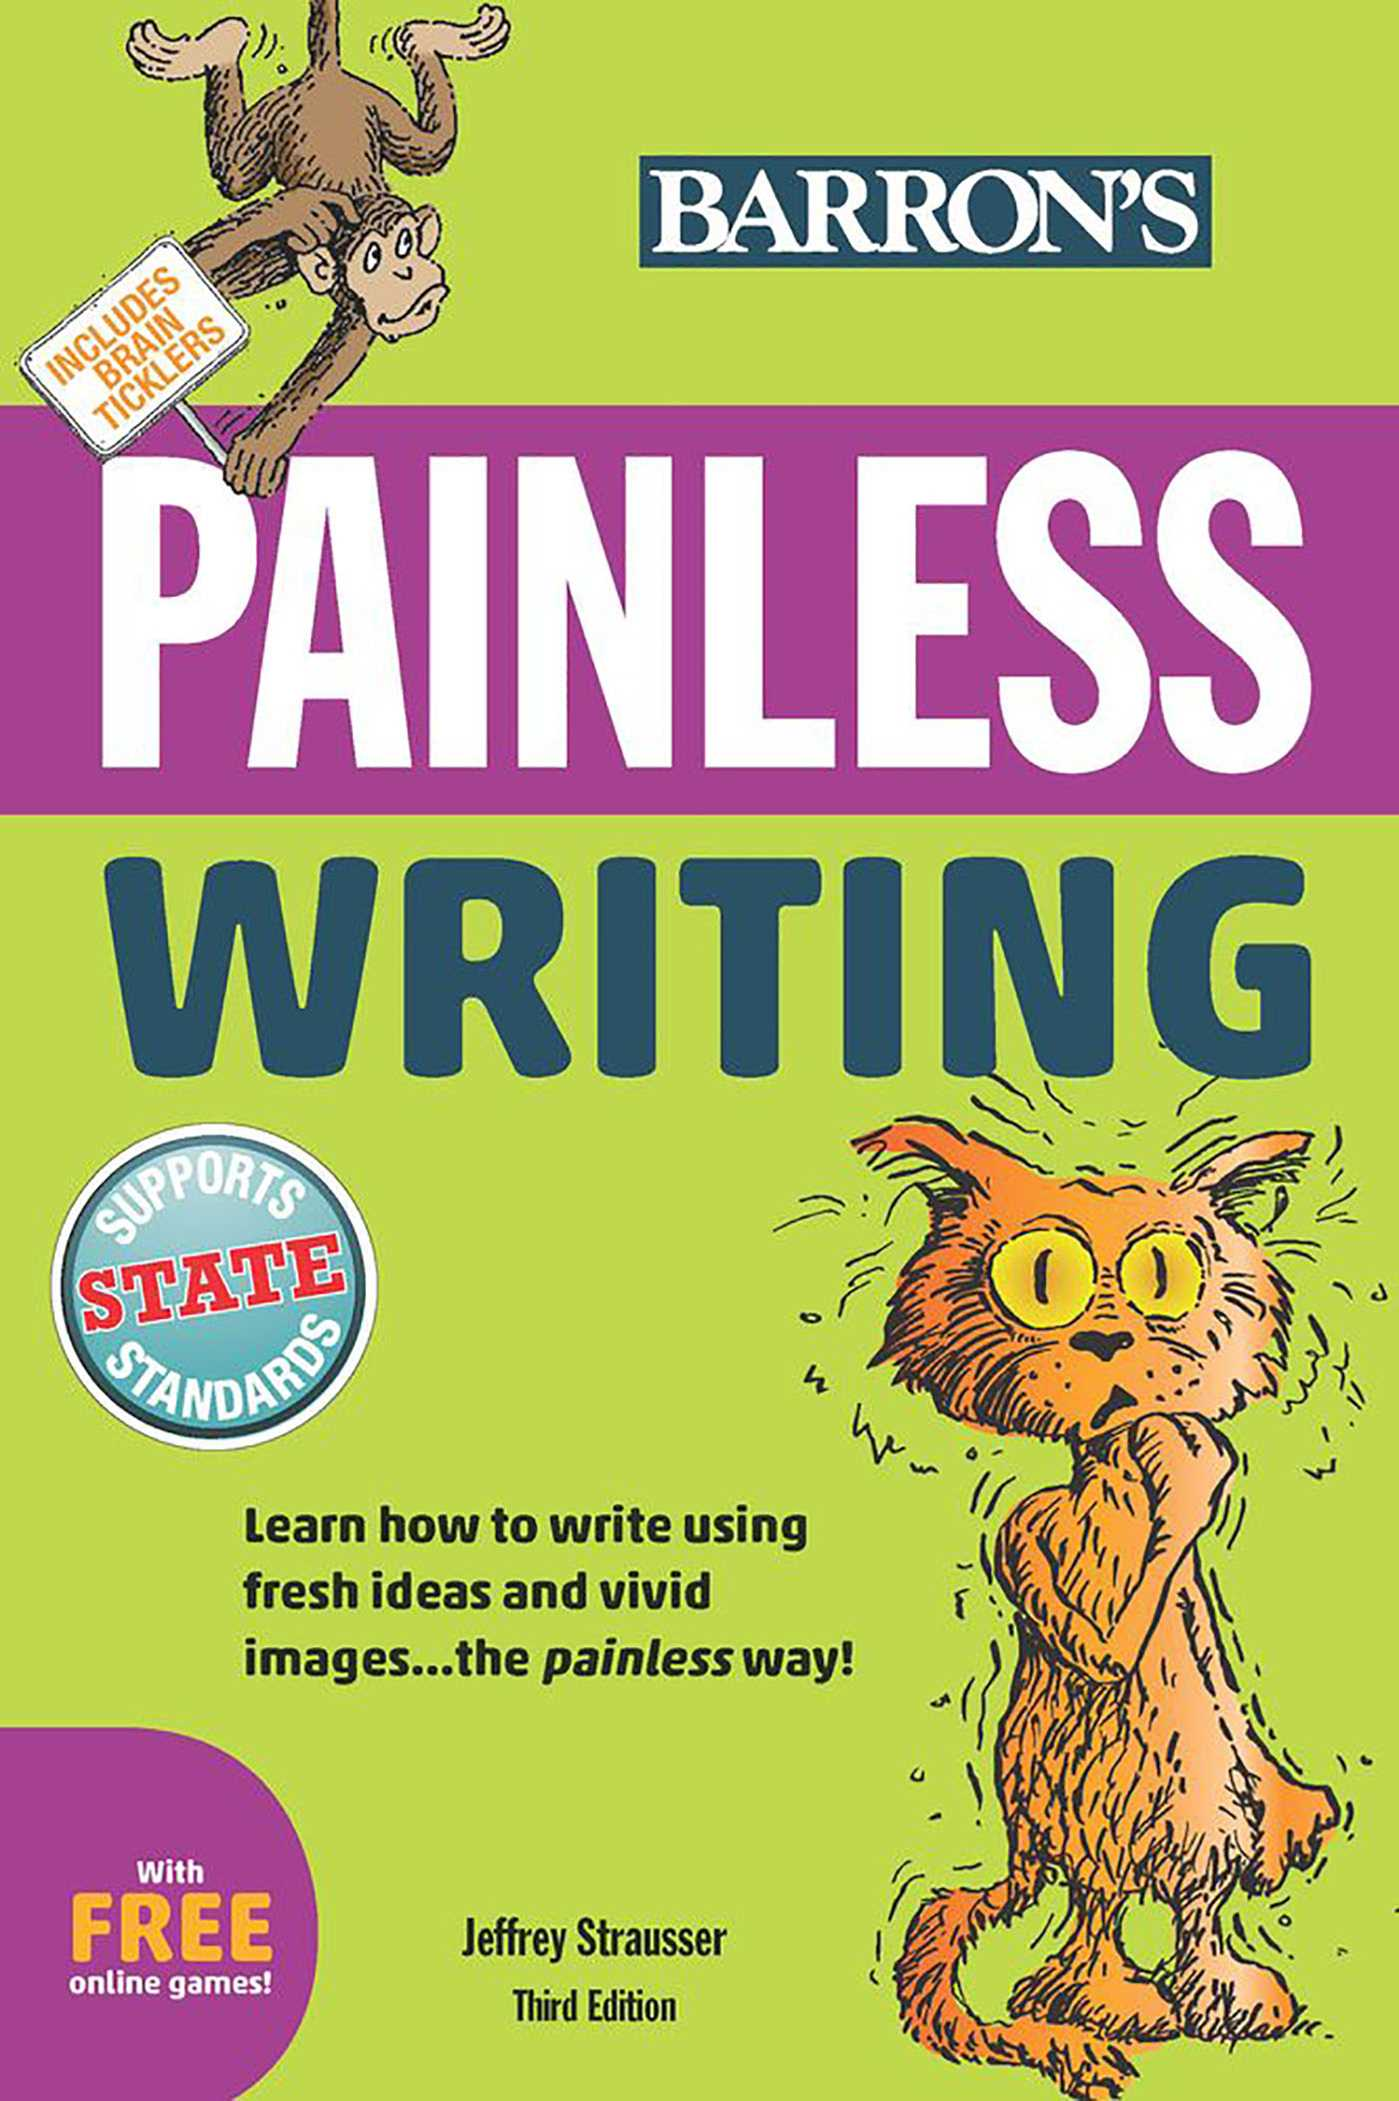 Painless Writing | Book by Jeffrey Strausser | Official Publisher